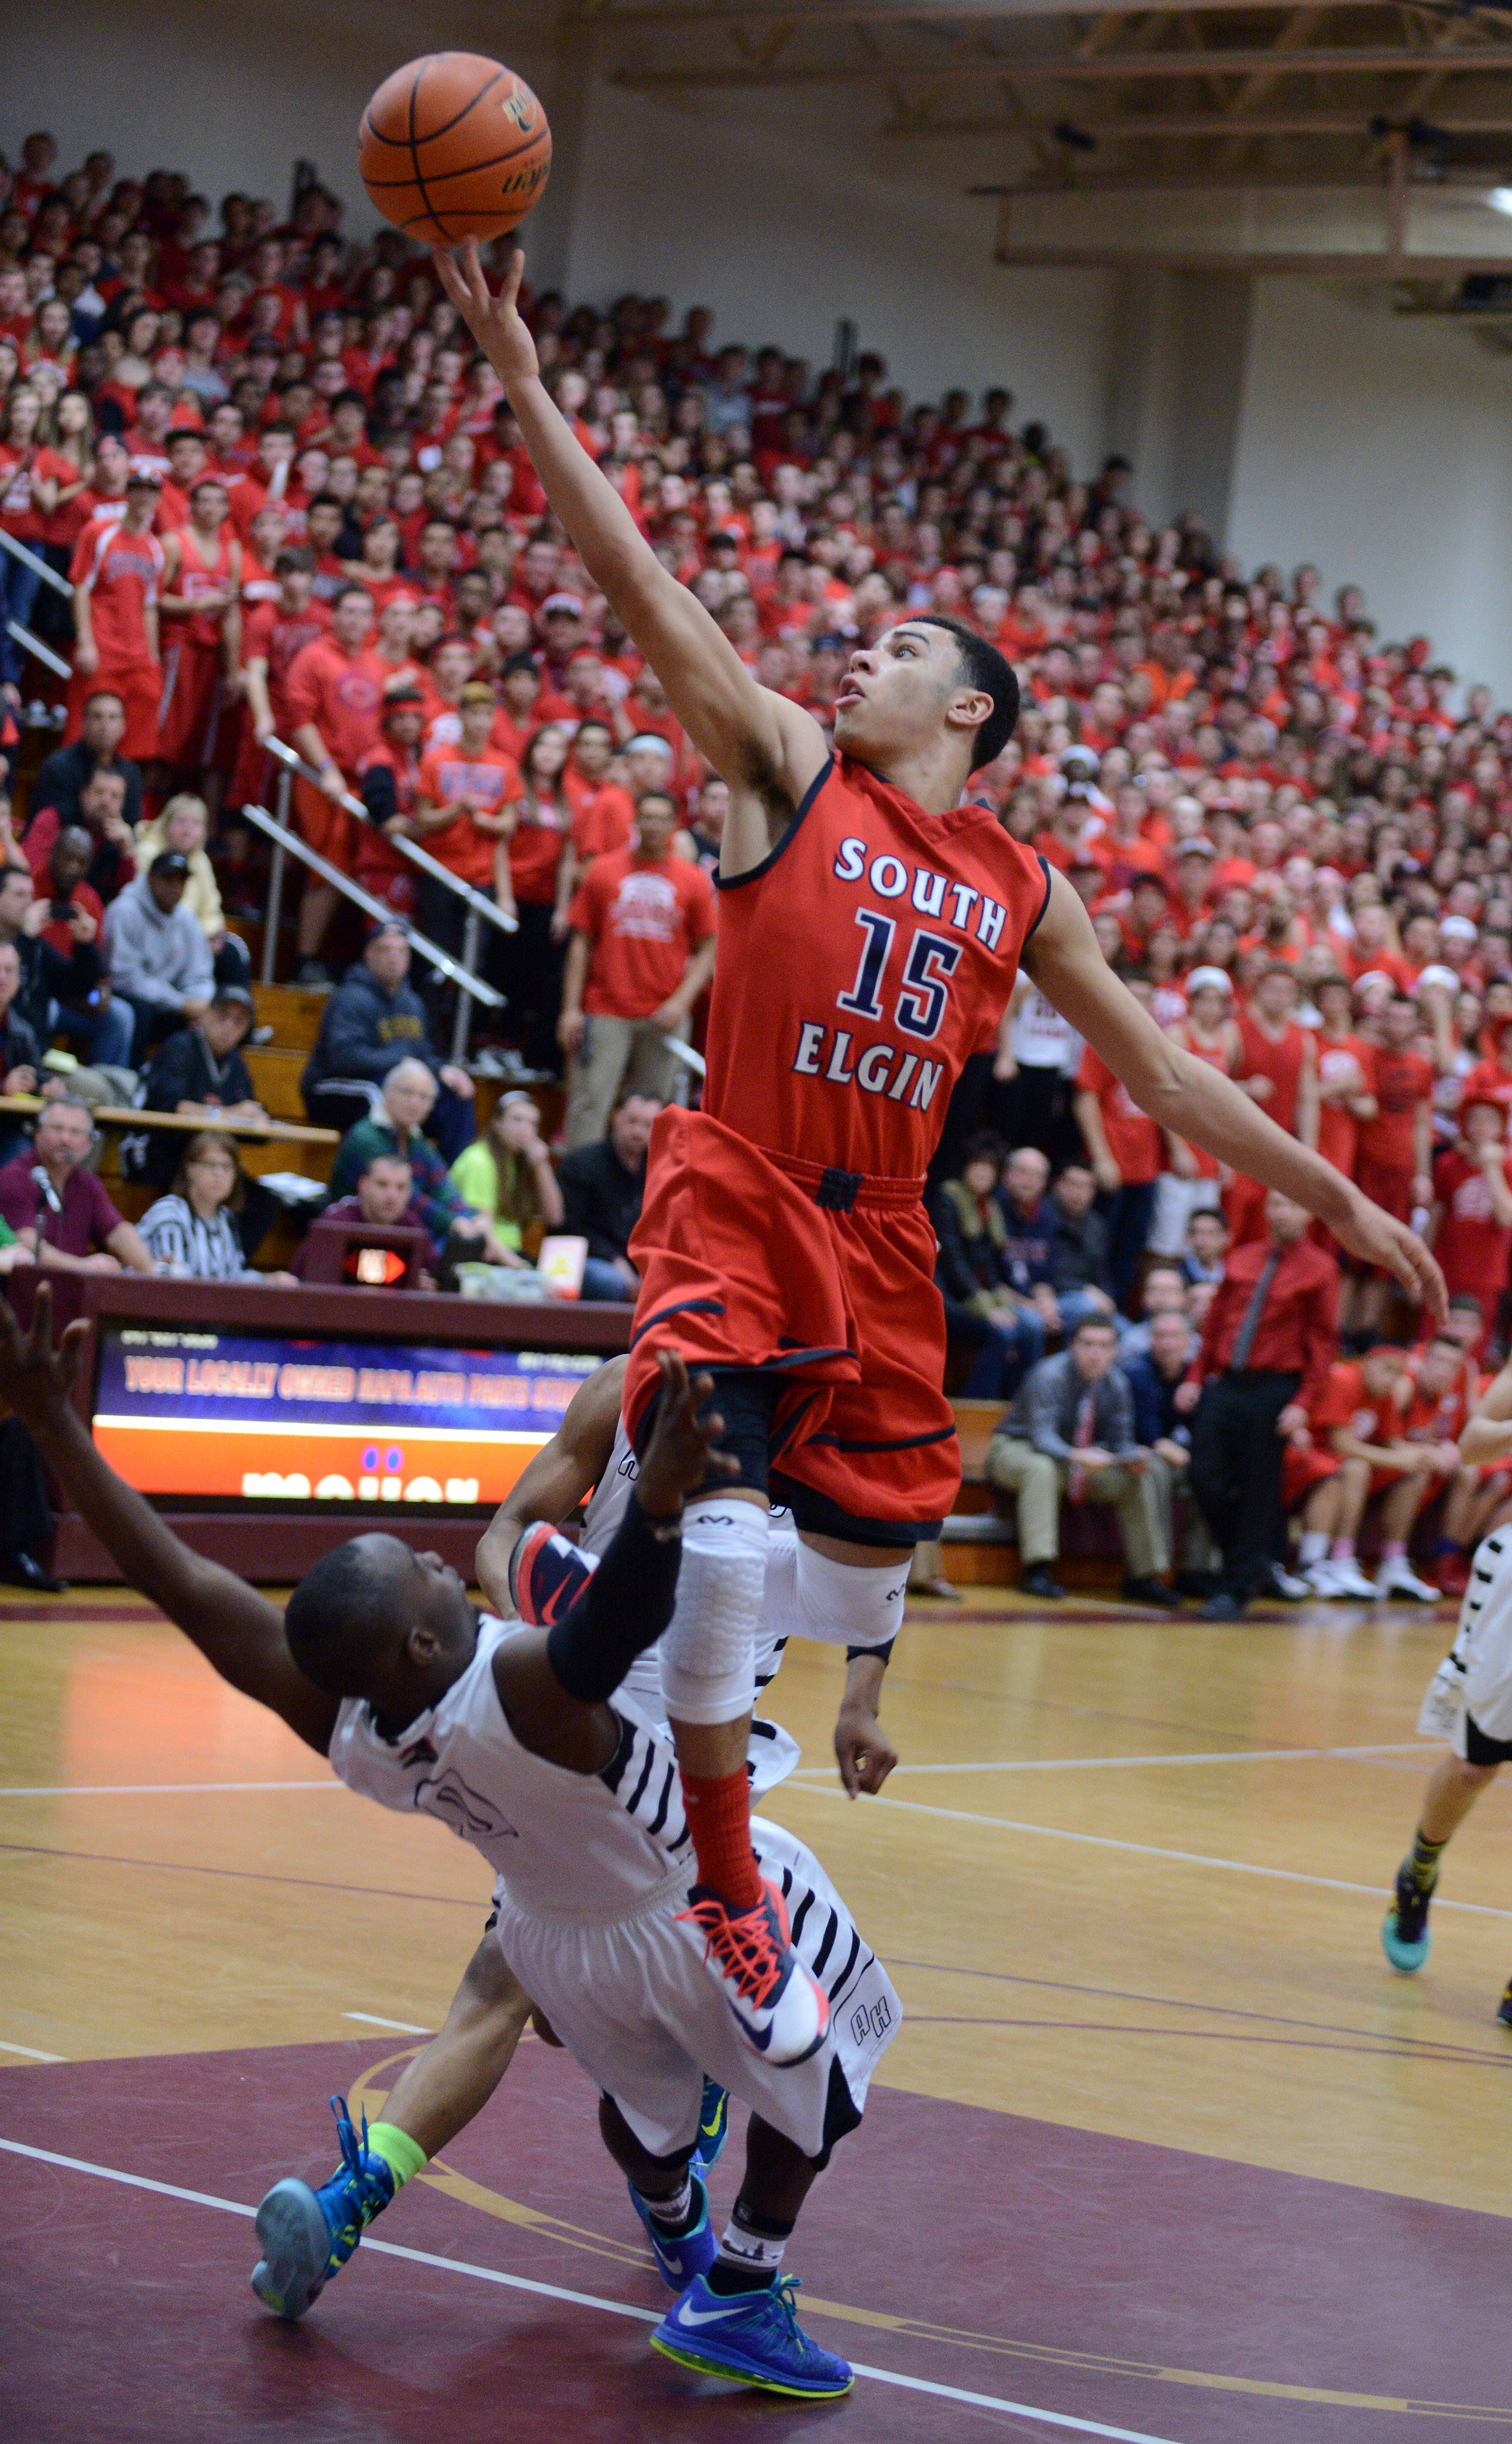 South Elgin's Matthew Smith  glides to the basket and draws a blocking call against Rockford Auburn's Phil Trammell.